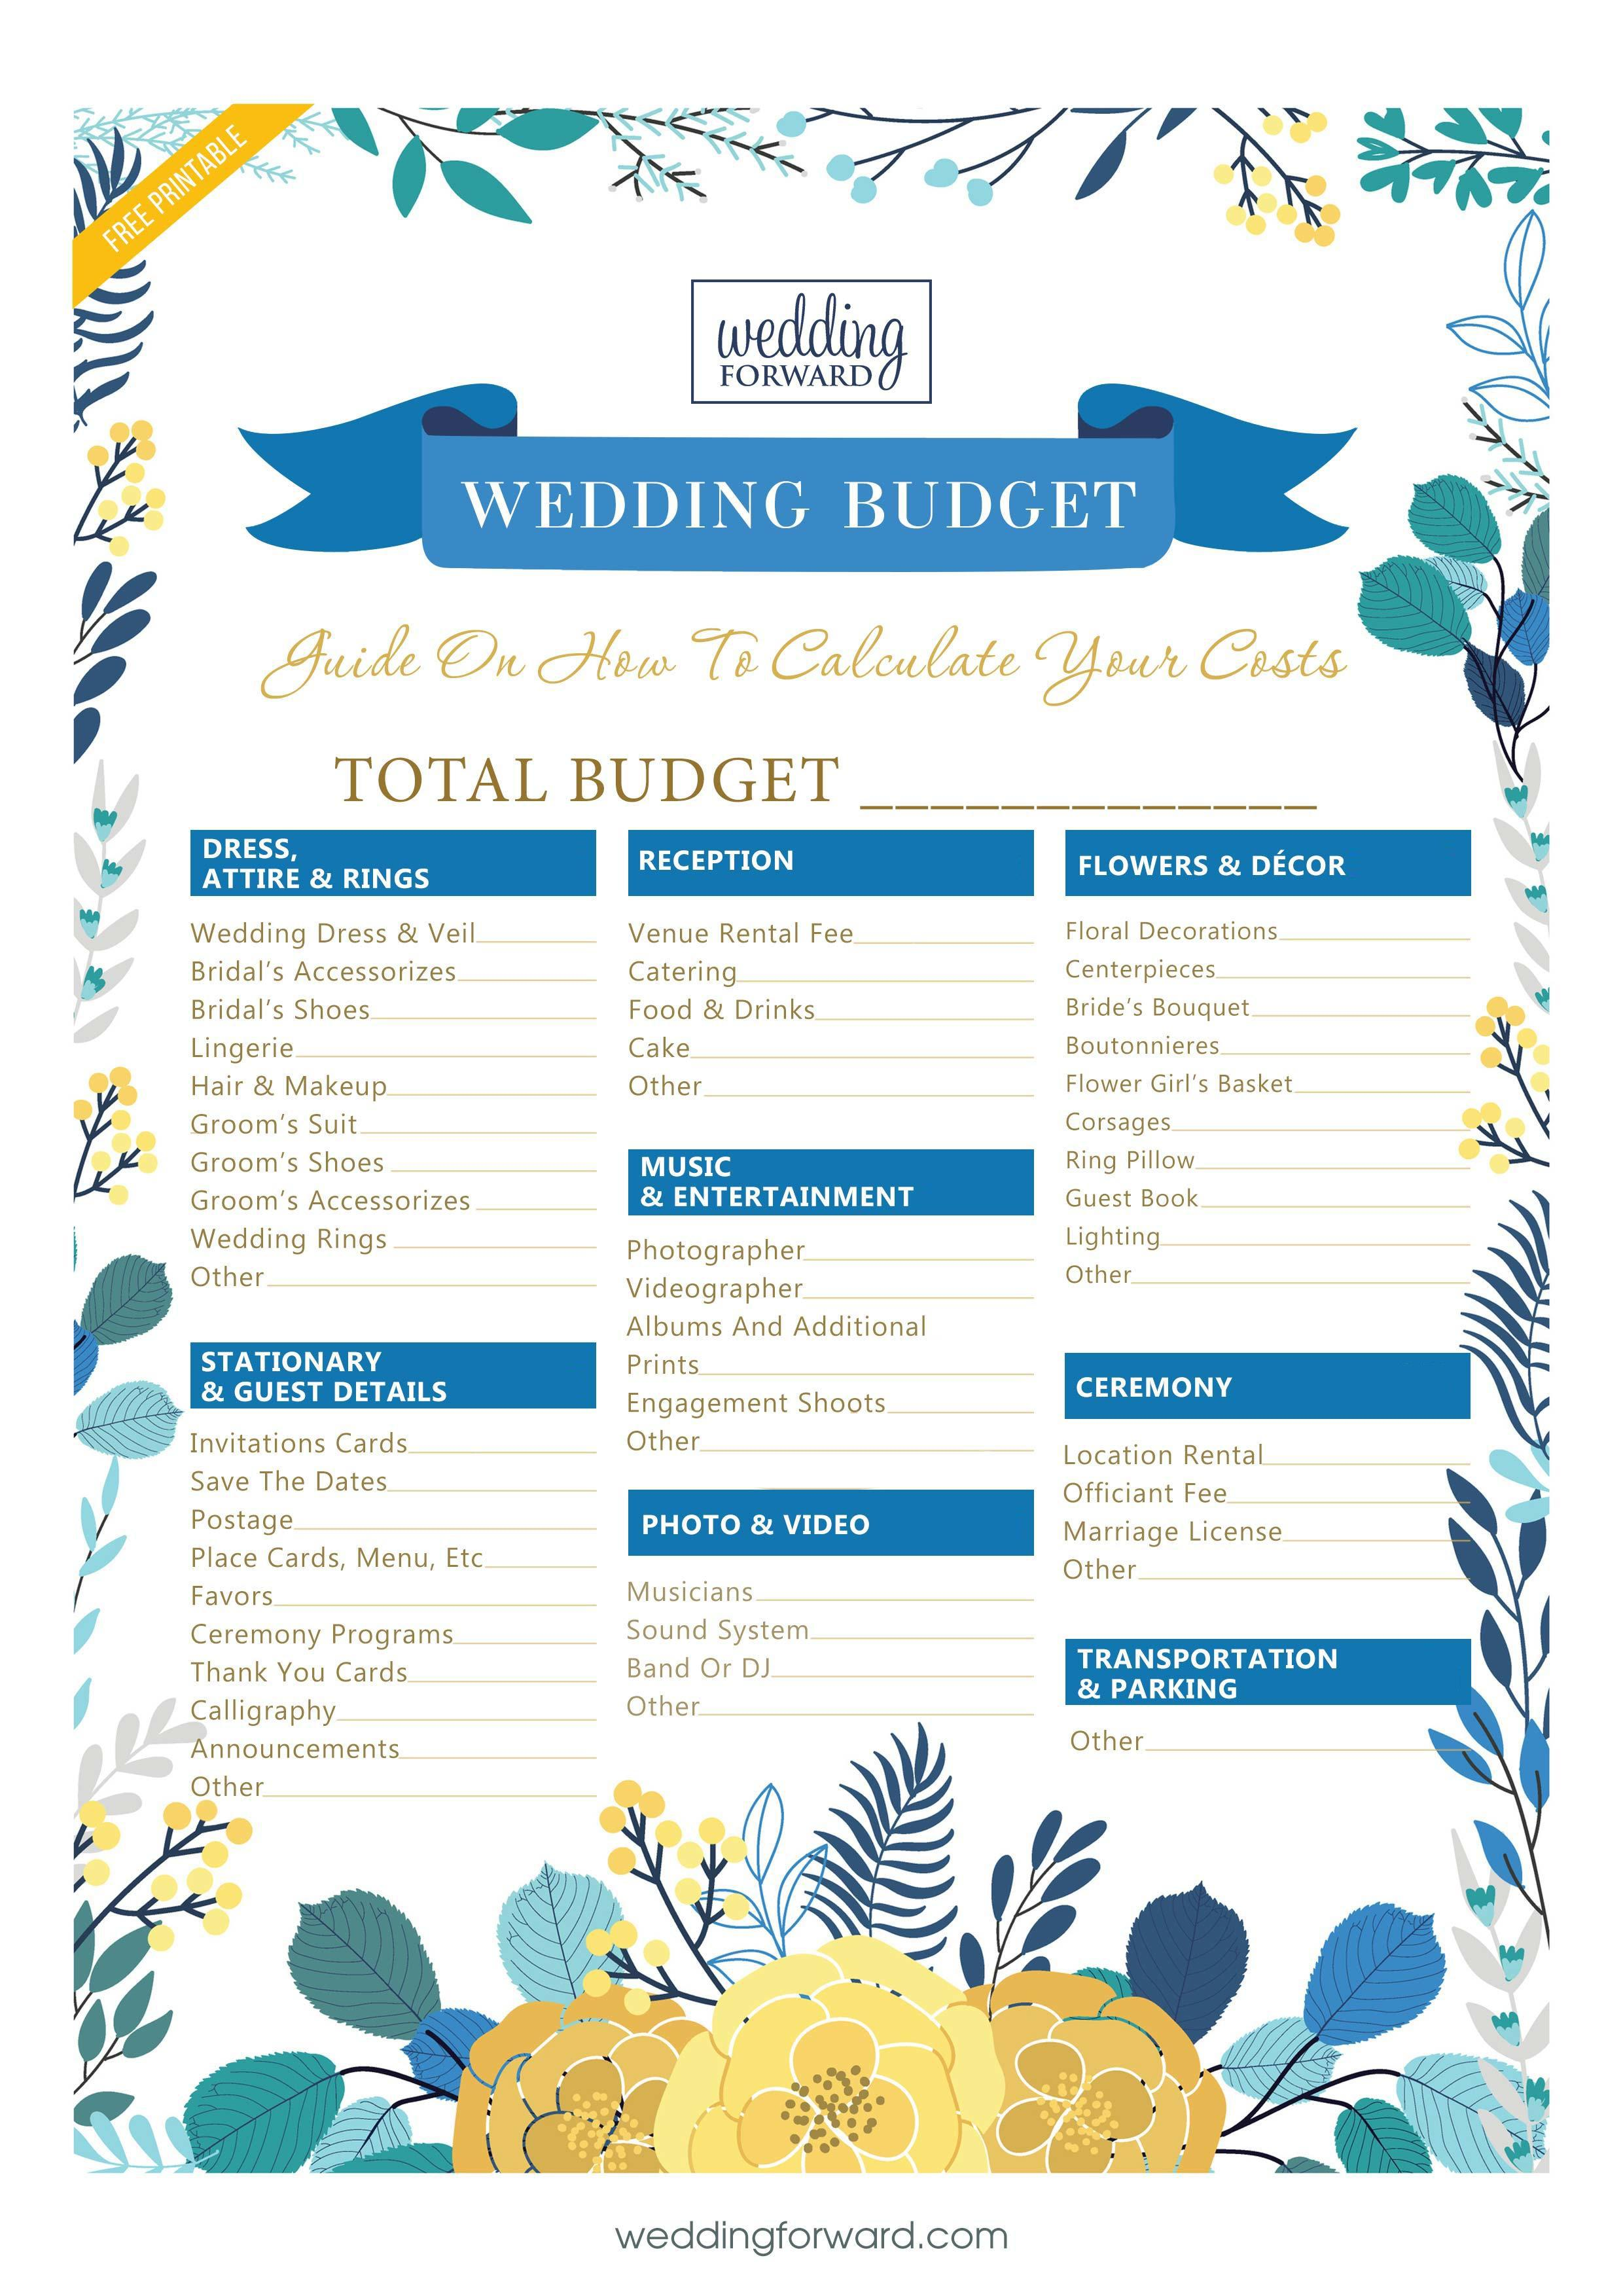 Super Easy Steps To Creating Your Wedding Budget